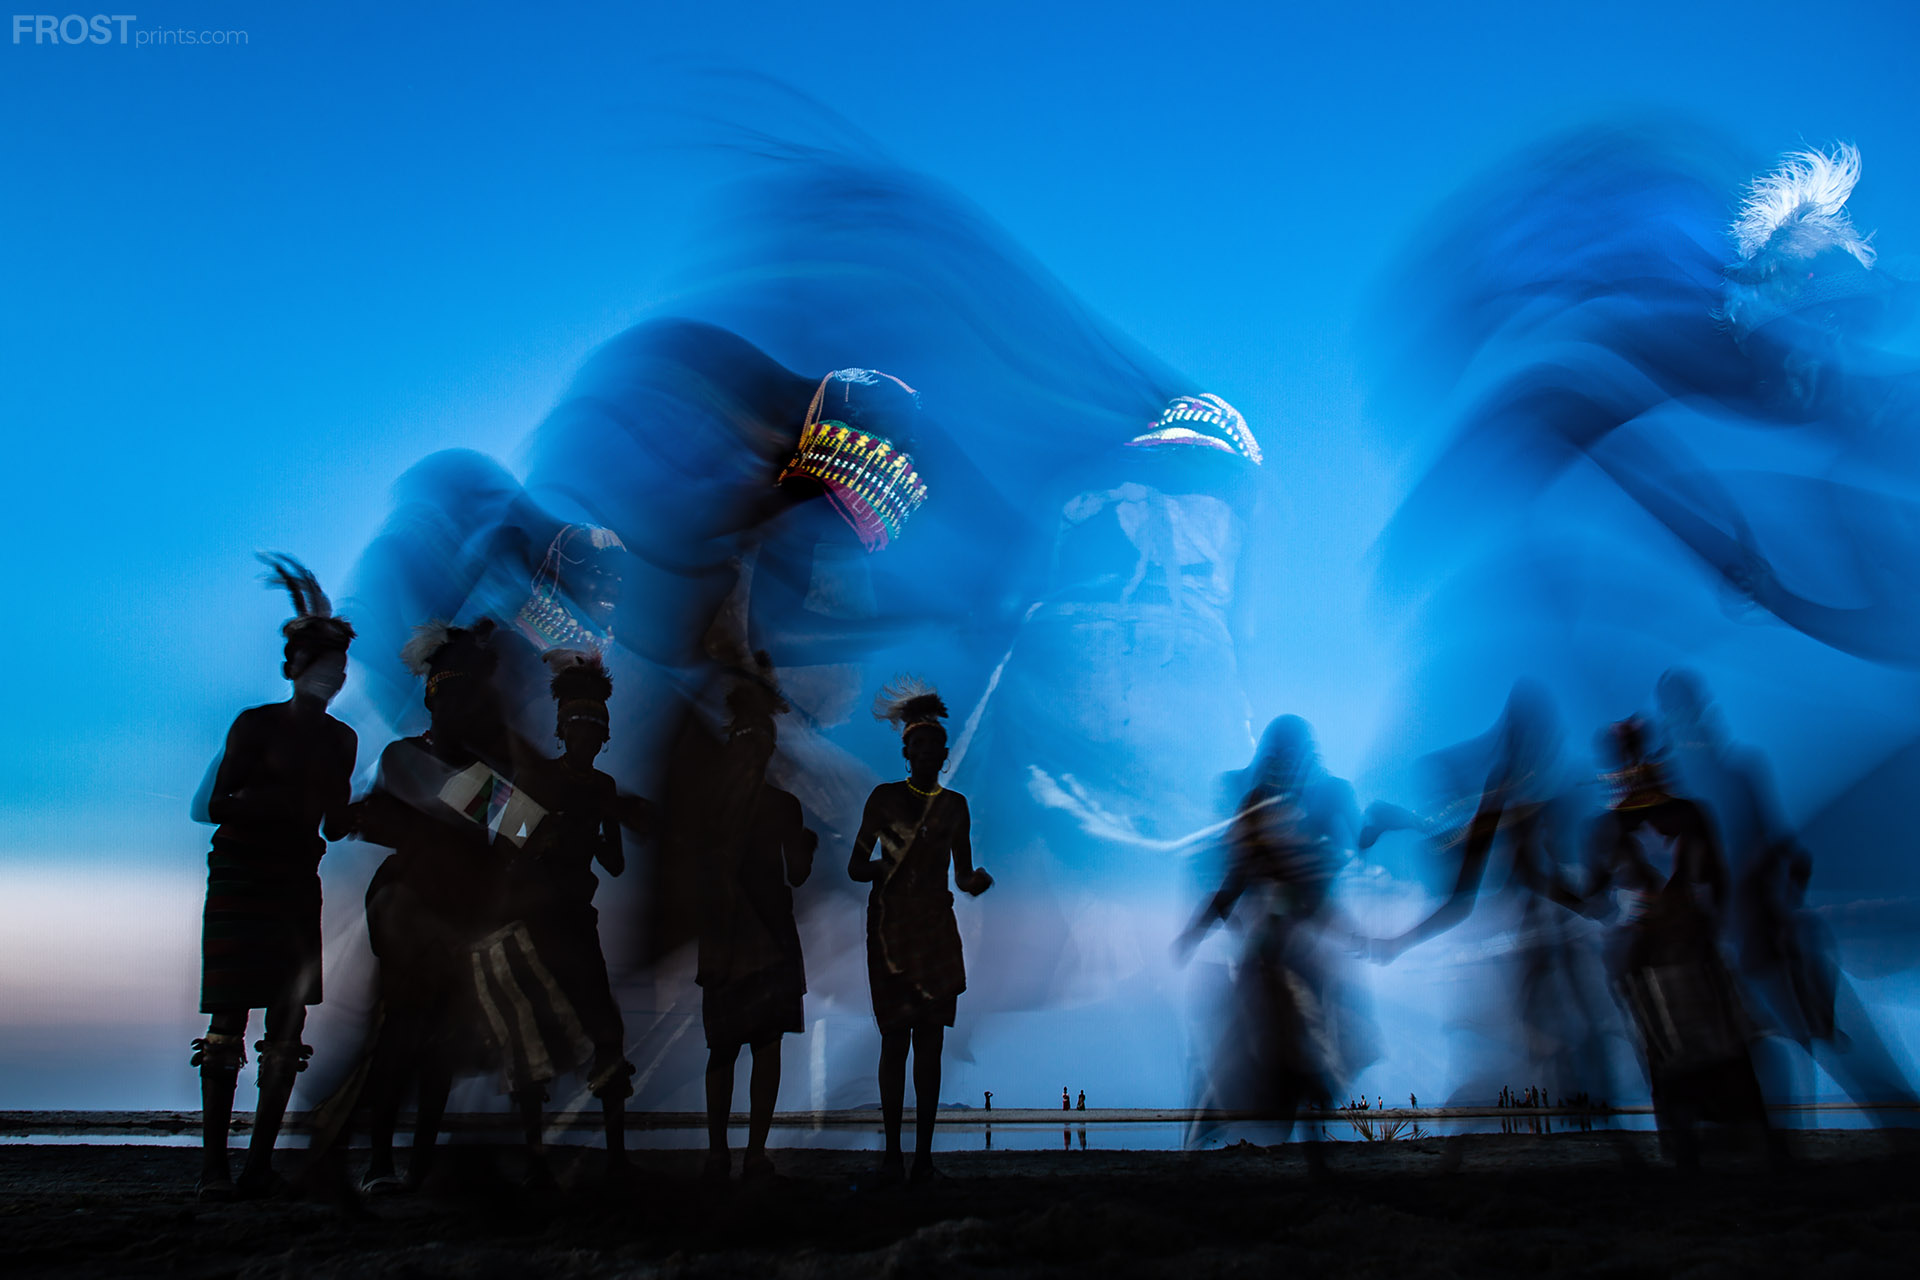 African Tribes Photography